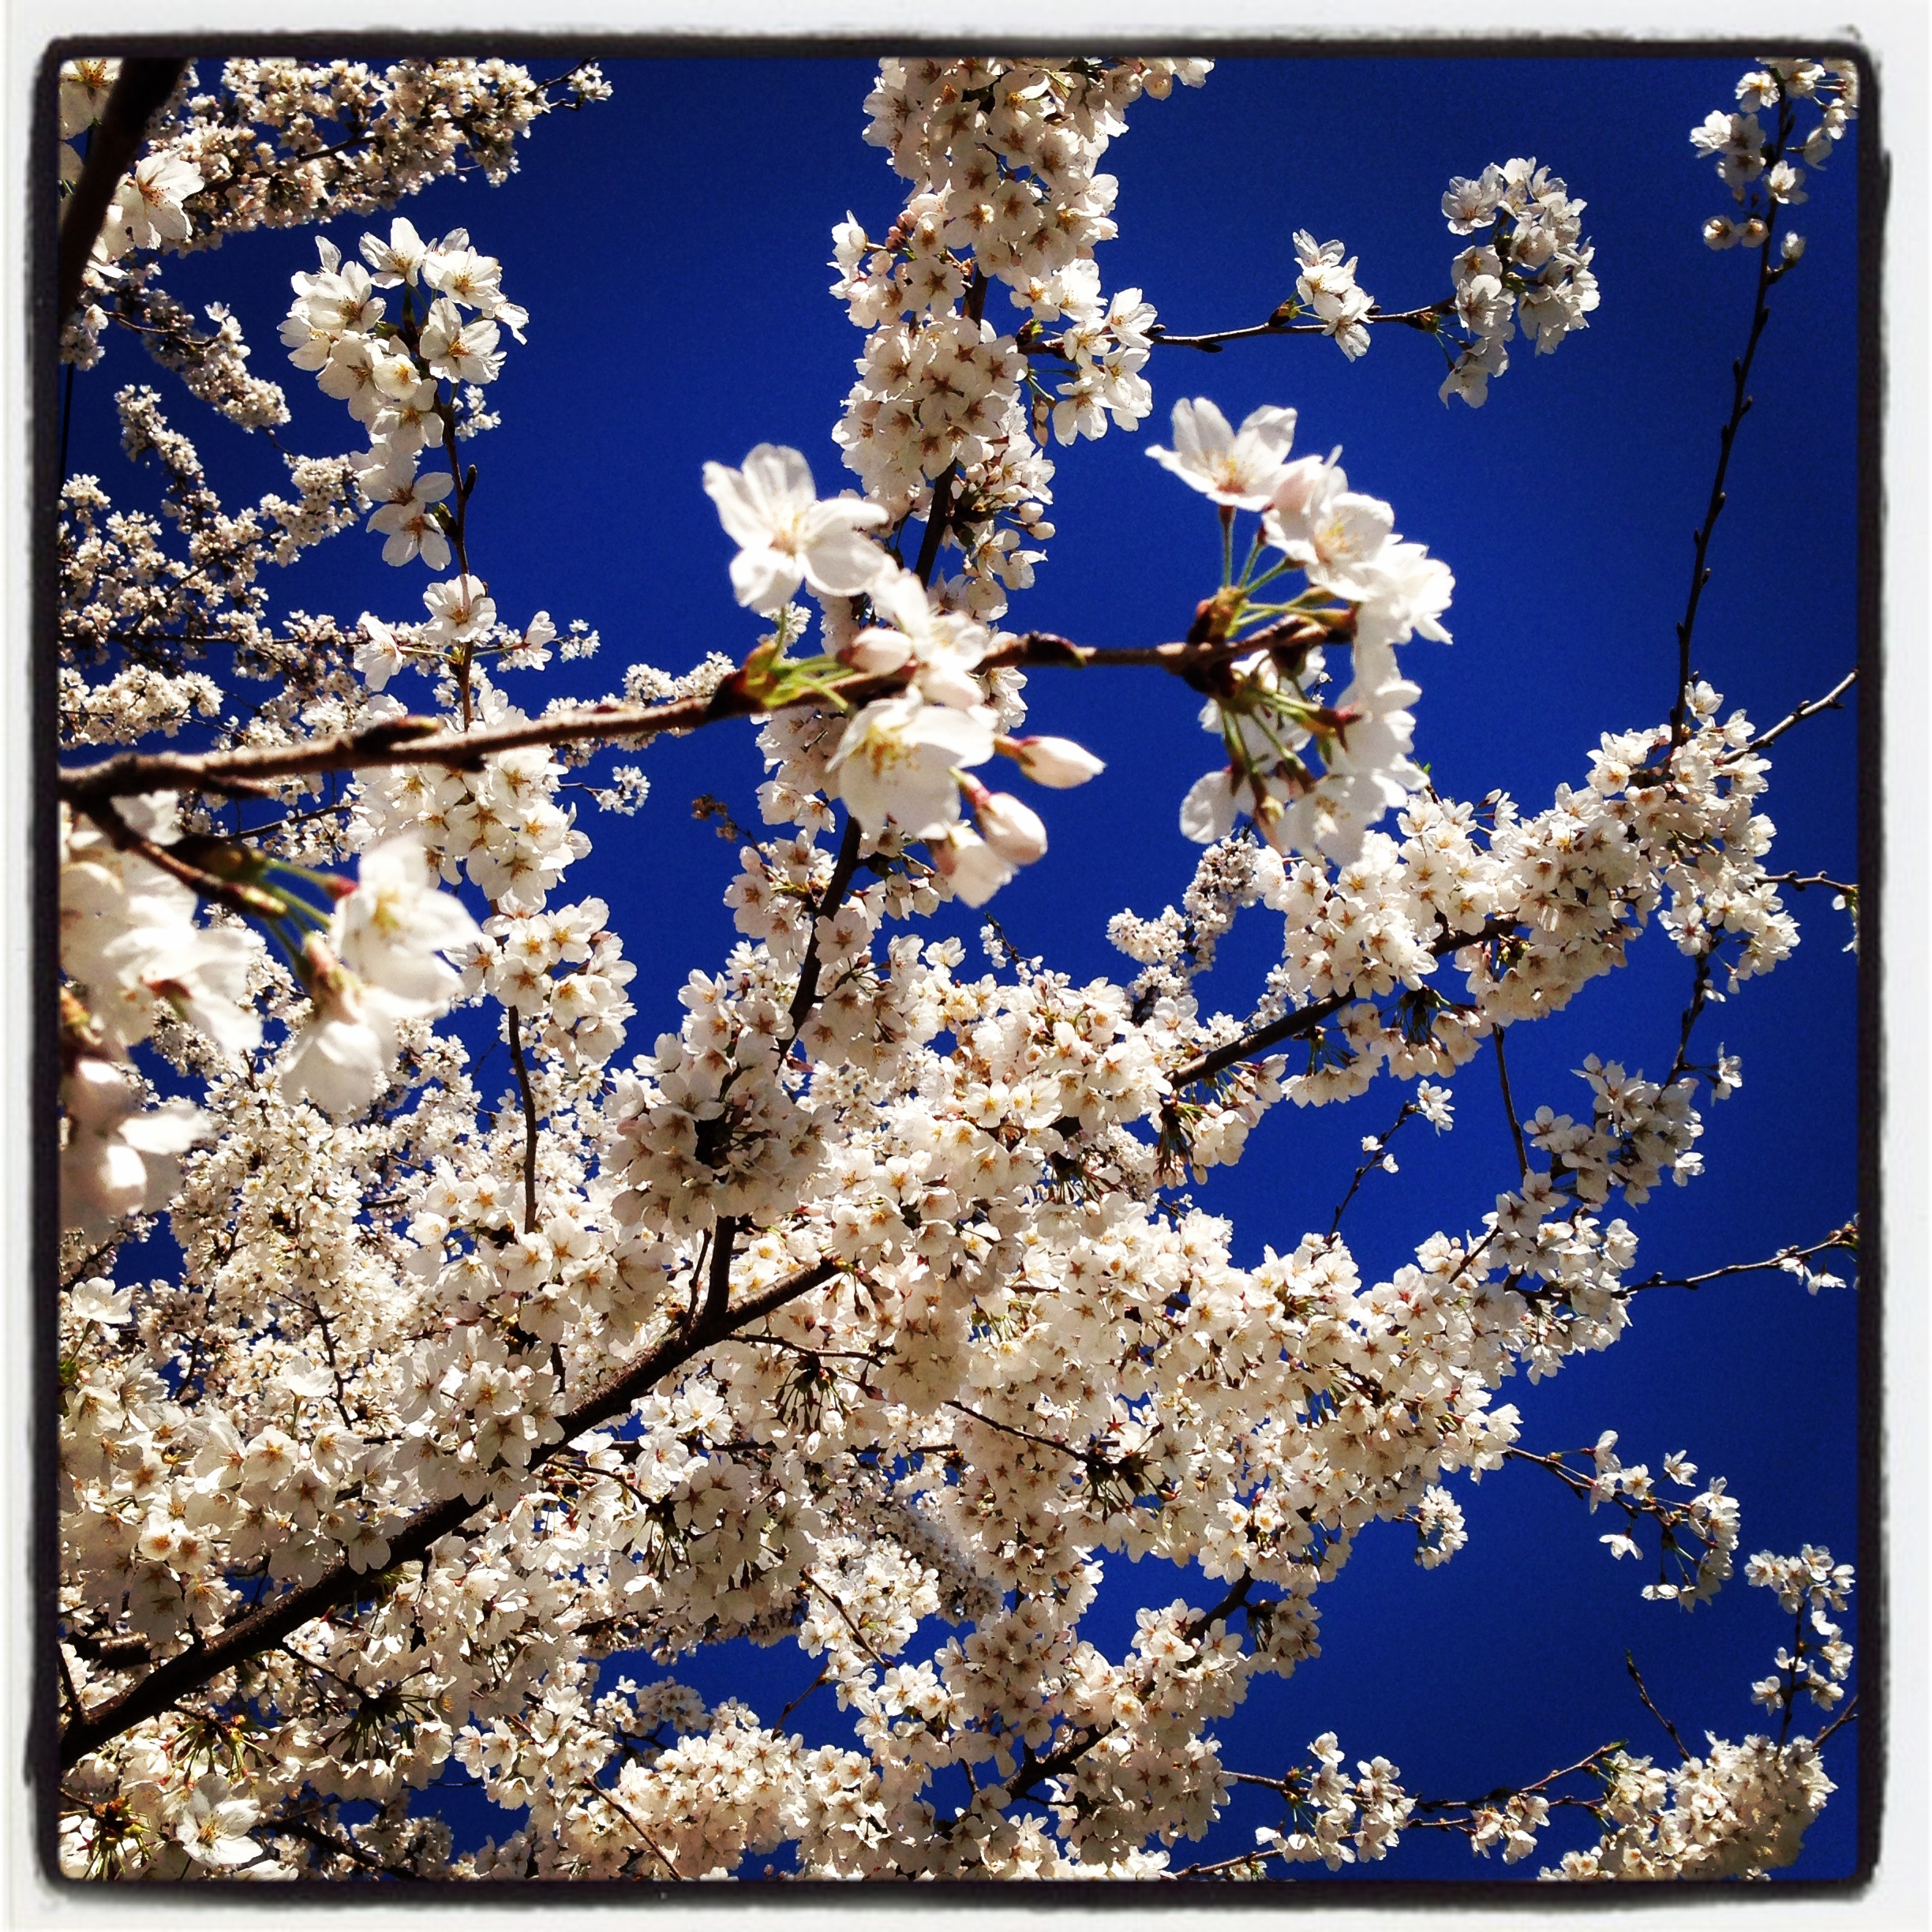 Maplewood Cherry Blossoms 4-17-14